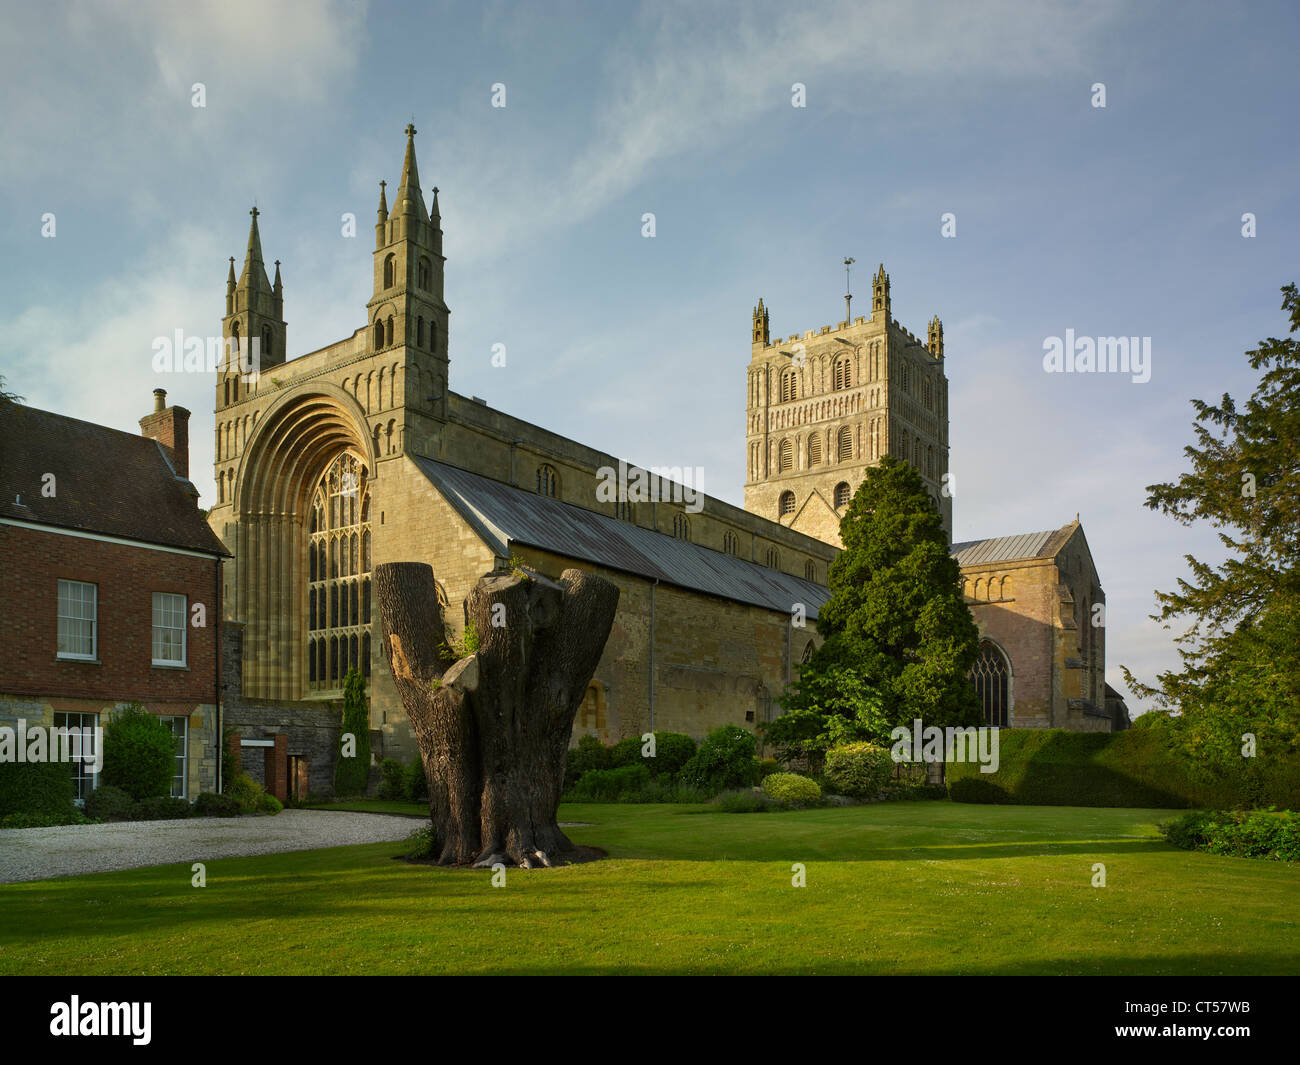 Tewkesbury Abbey from southwest, Norman architecture - Stock Image